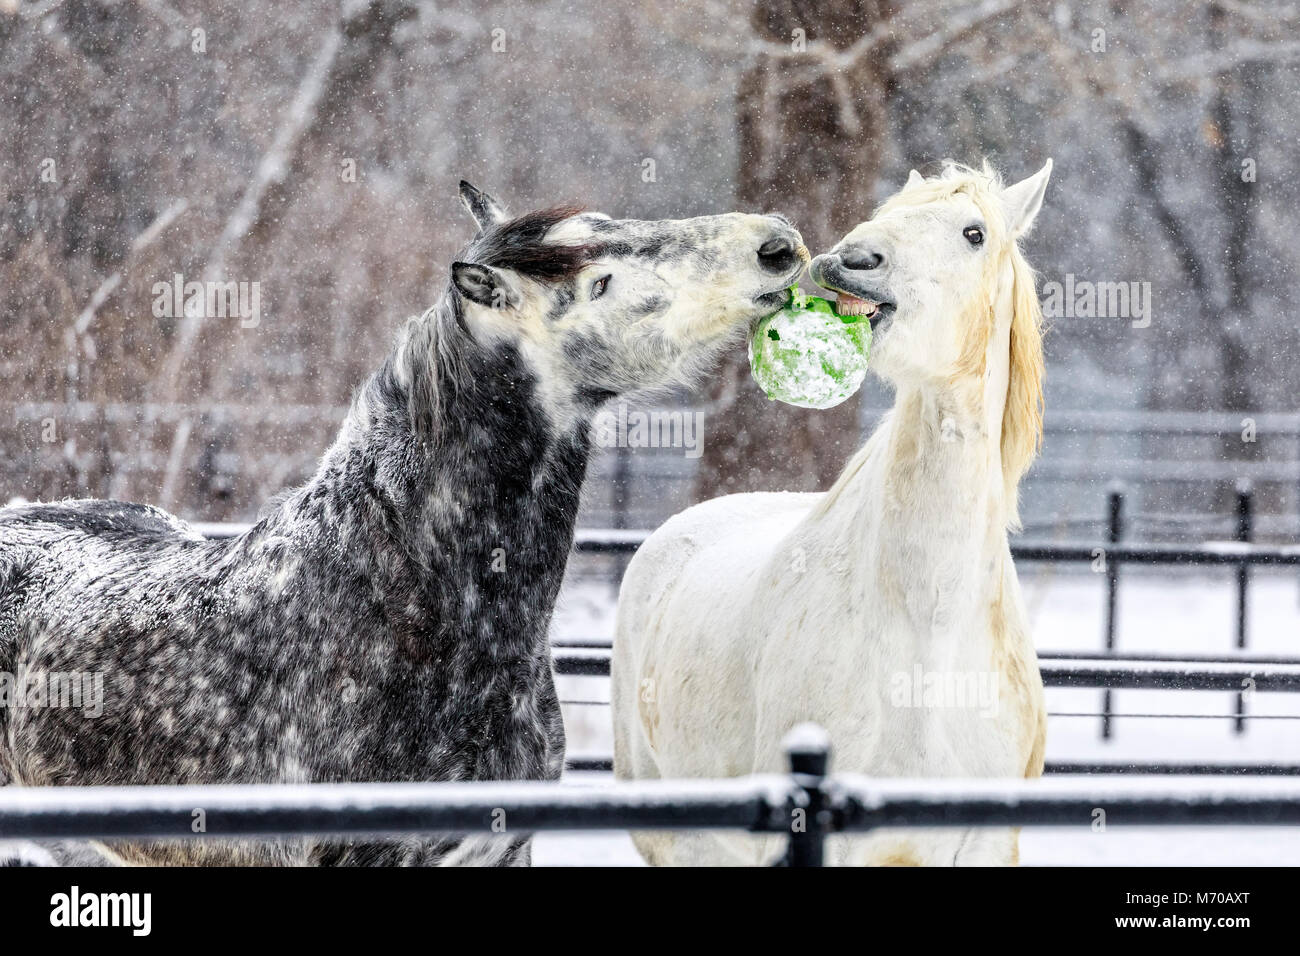 Playful Percheron horses at McFeeters Heavy Horse Centre, Winnipeg, Manitoba, Canada. - Stock Image